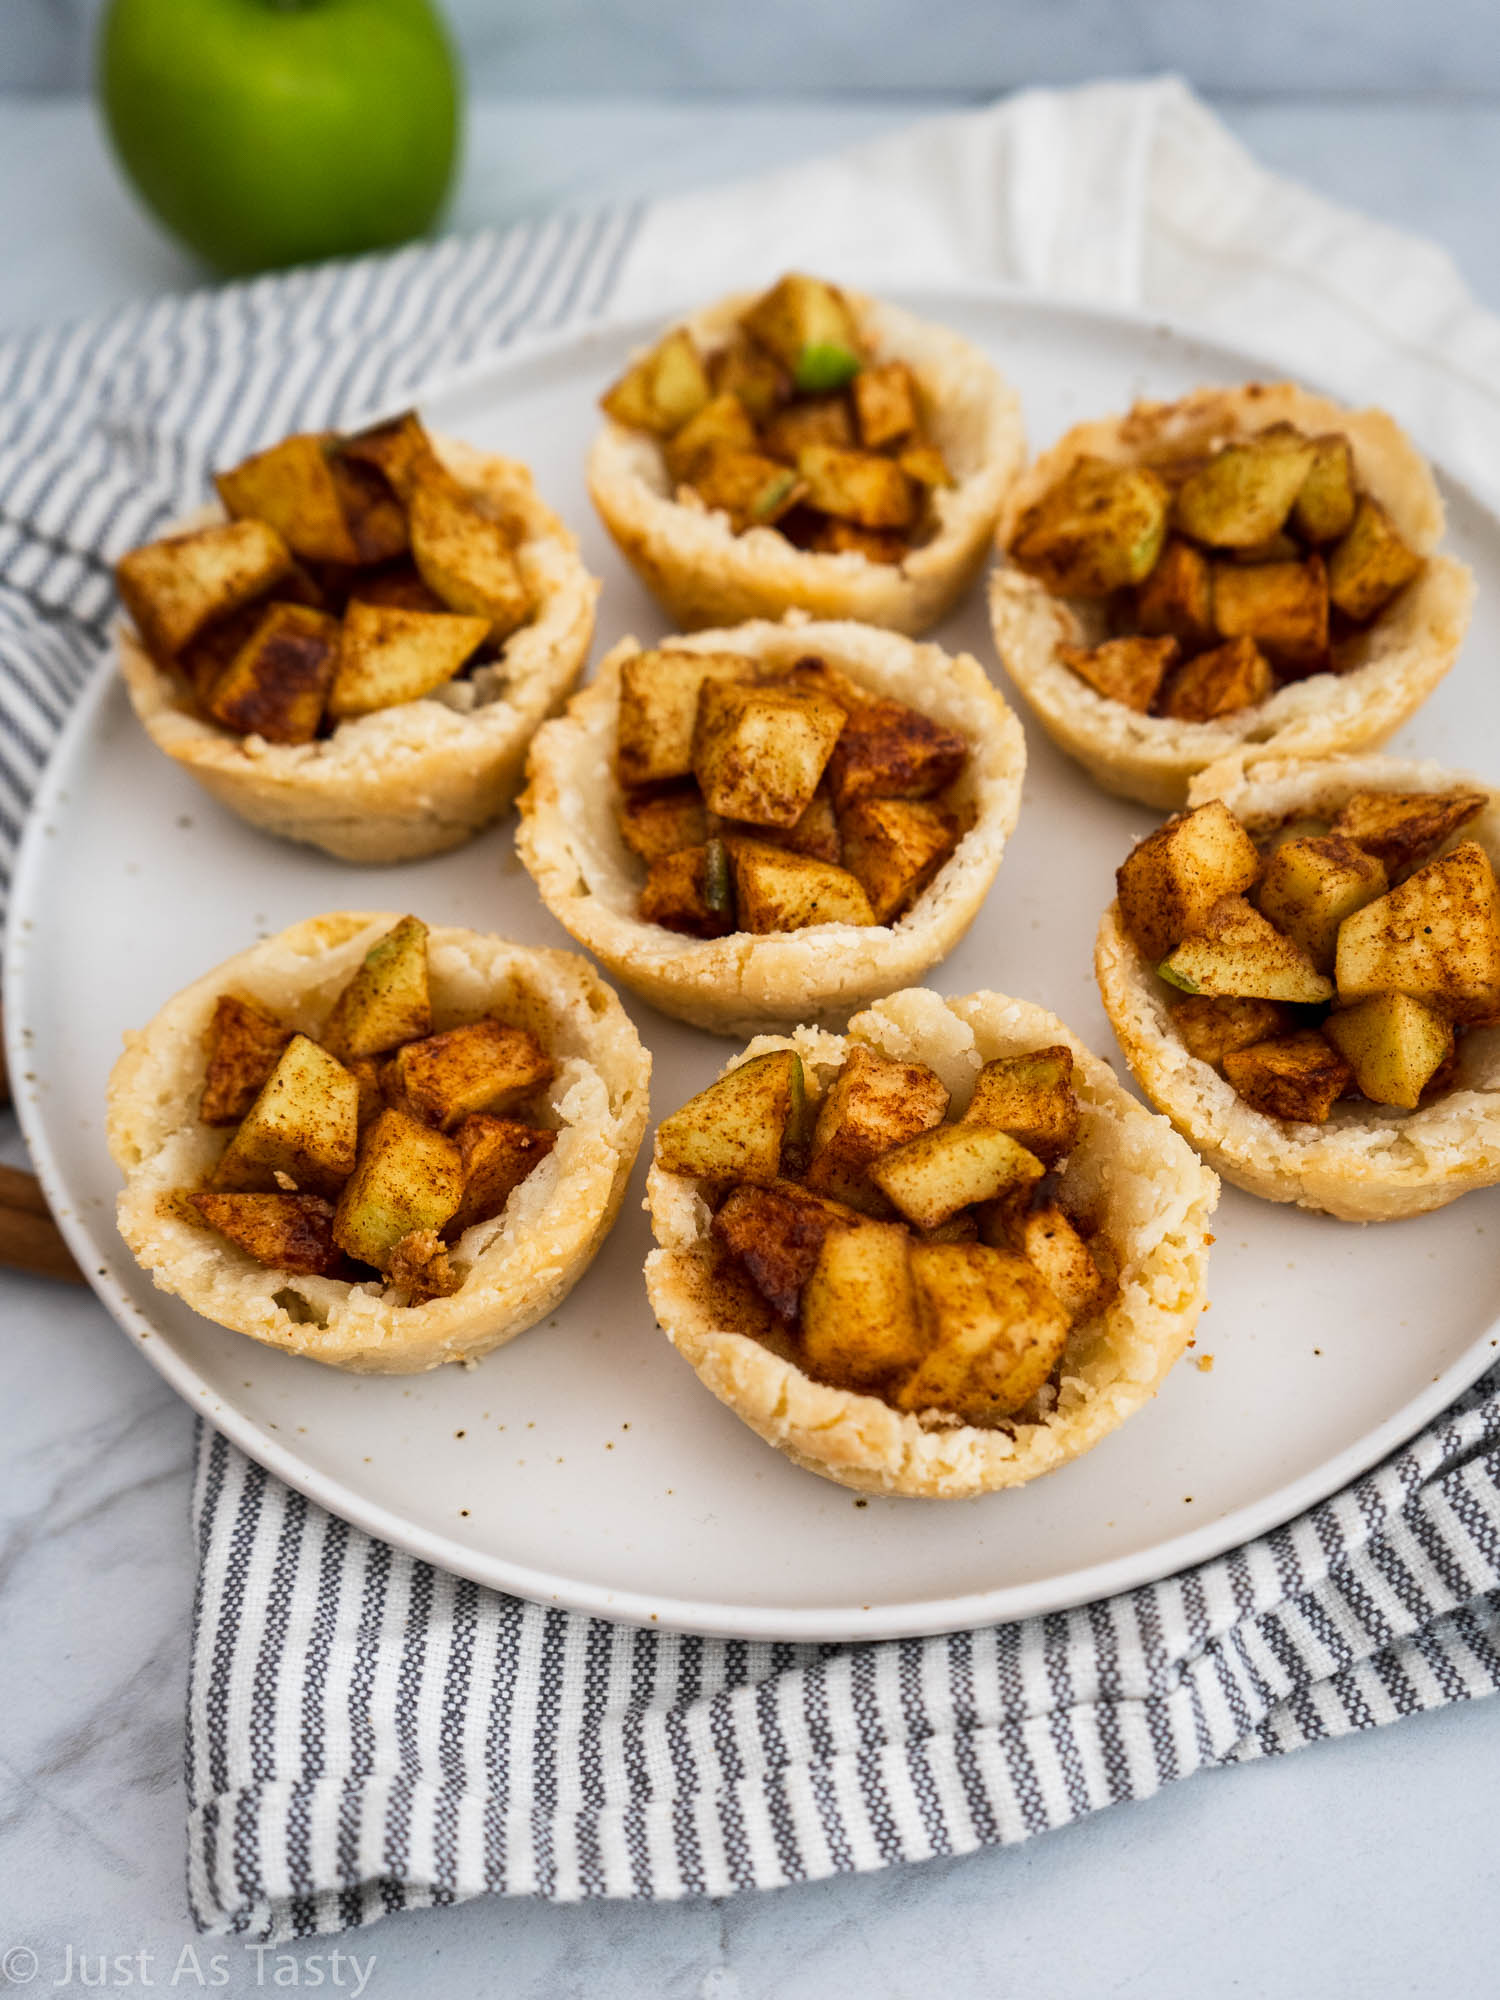 Mini pies on a white plate.